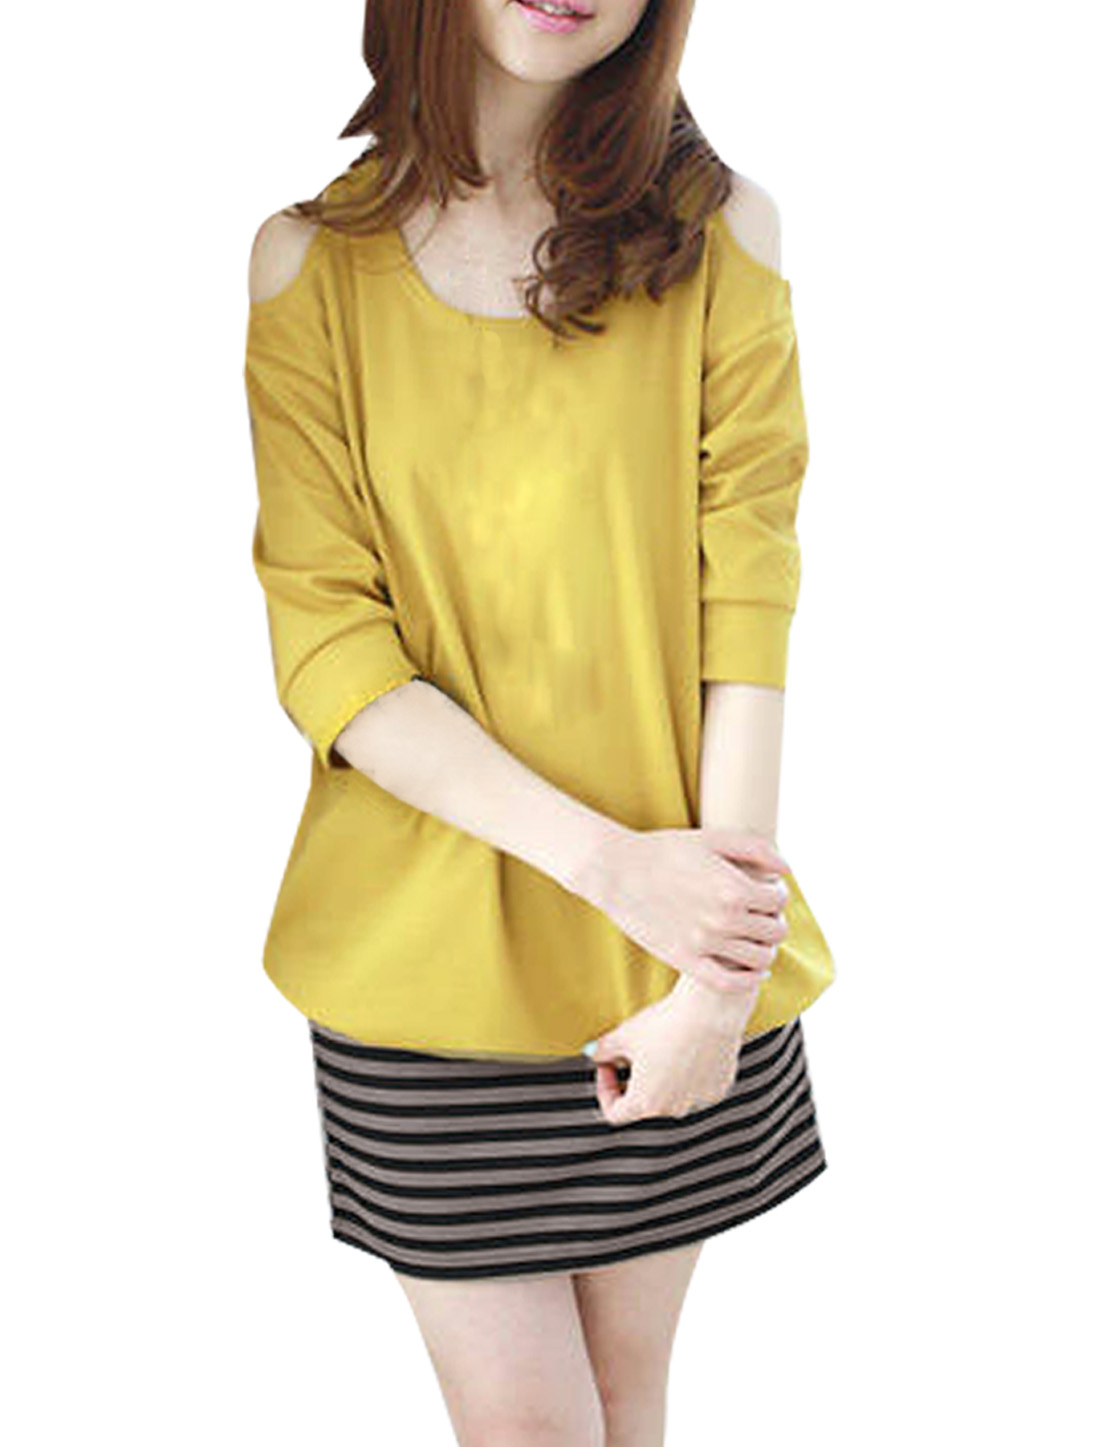 Woman Hollow out Shoulder Yellow Fake Two Piece Design Stretchy Tunic Mini Dress M